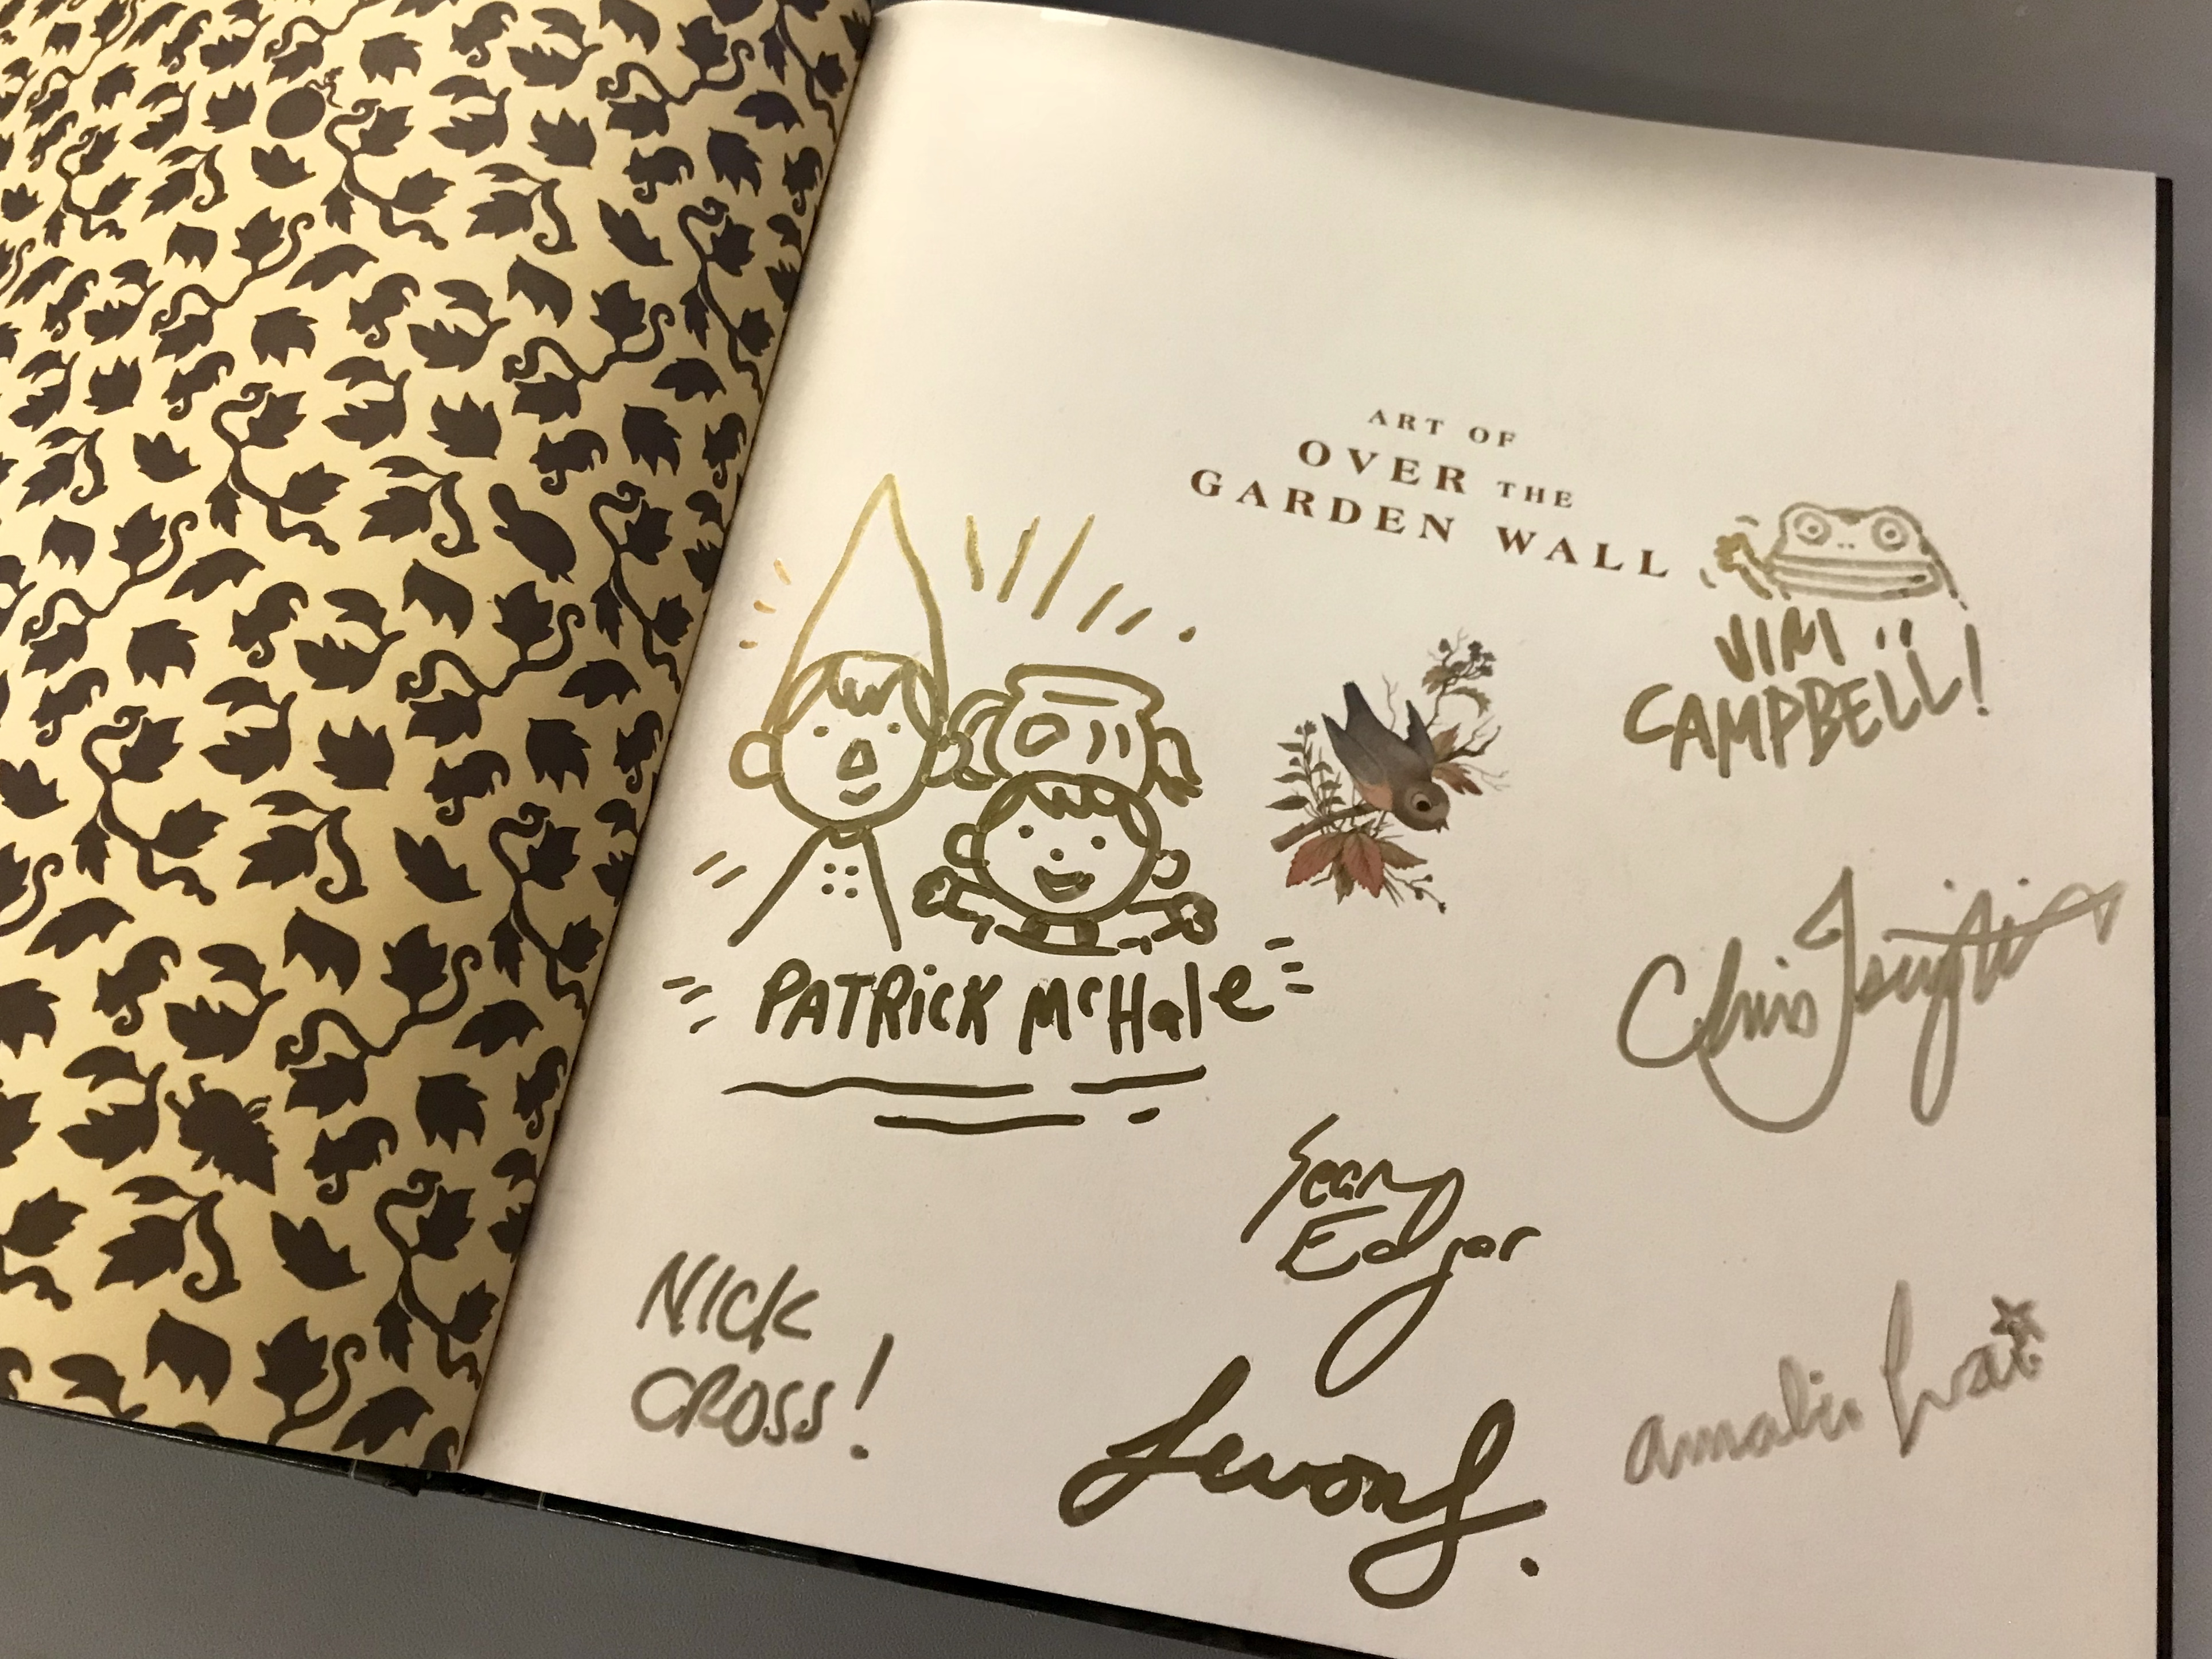 Retweet To Win The Art Of Over The Garden Wall Signed By Creative